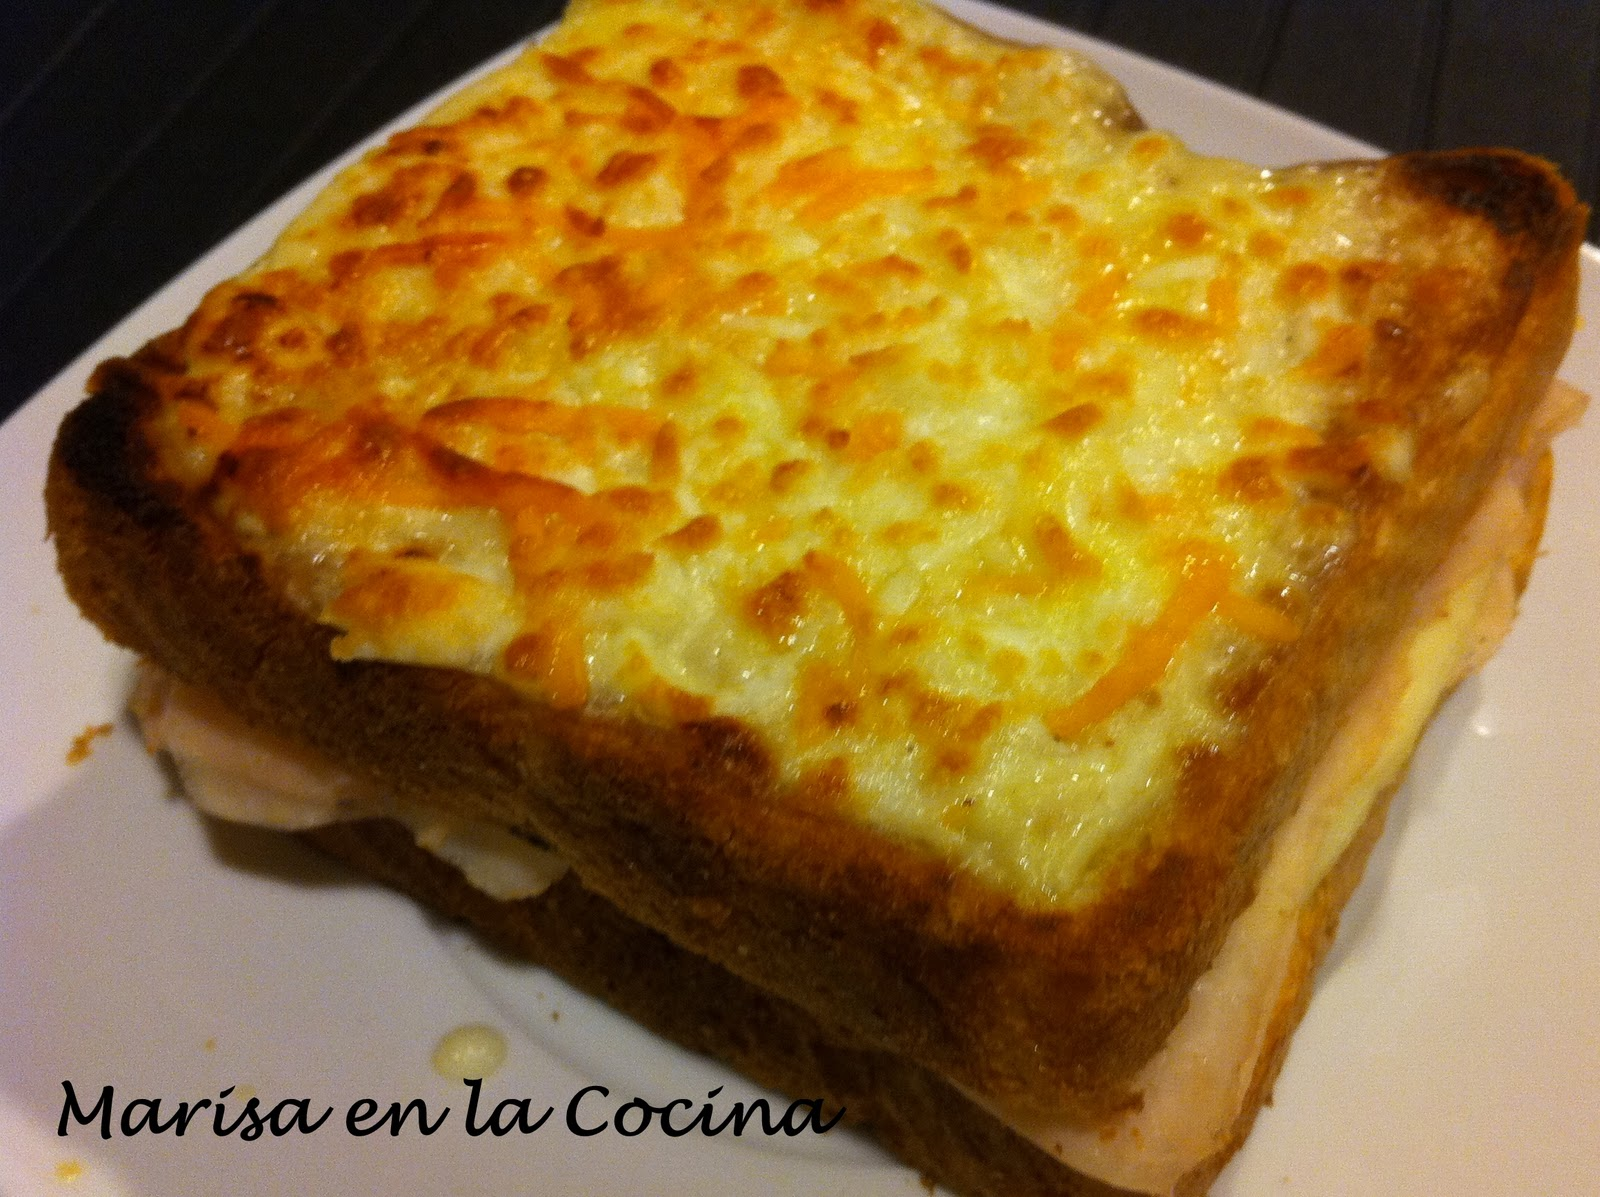 Marisa en la cocina croque monsieur for Cenas francesas